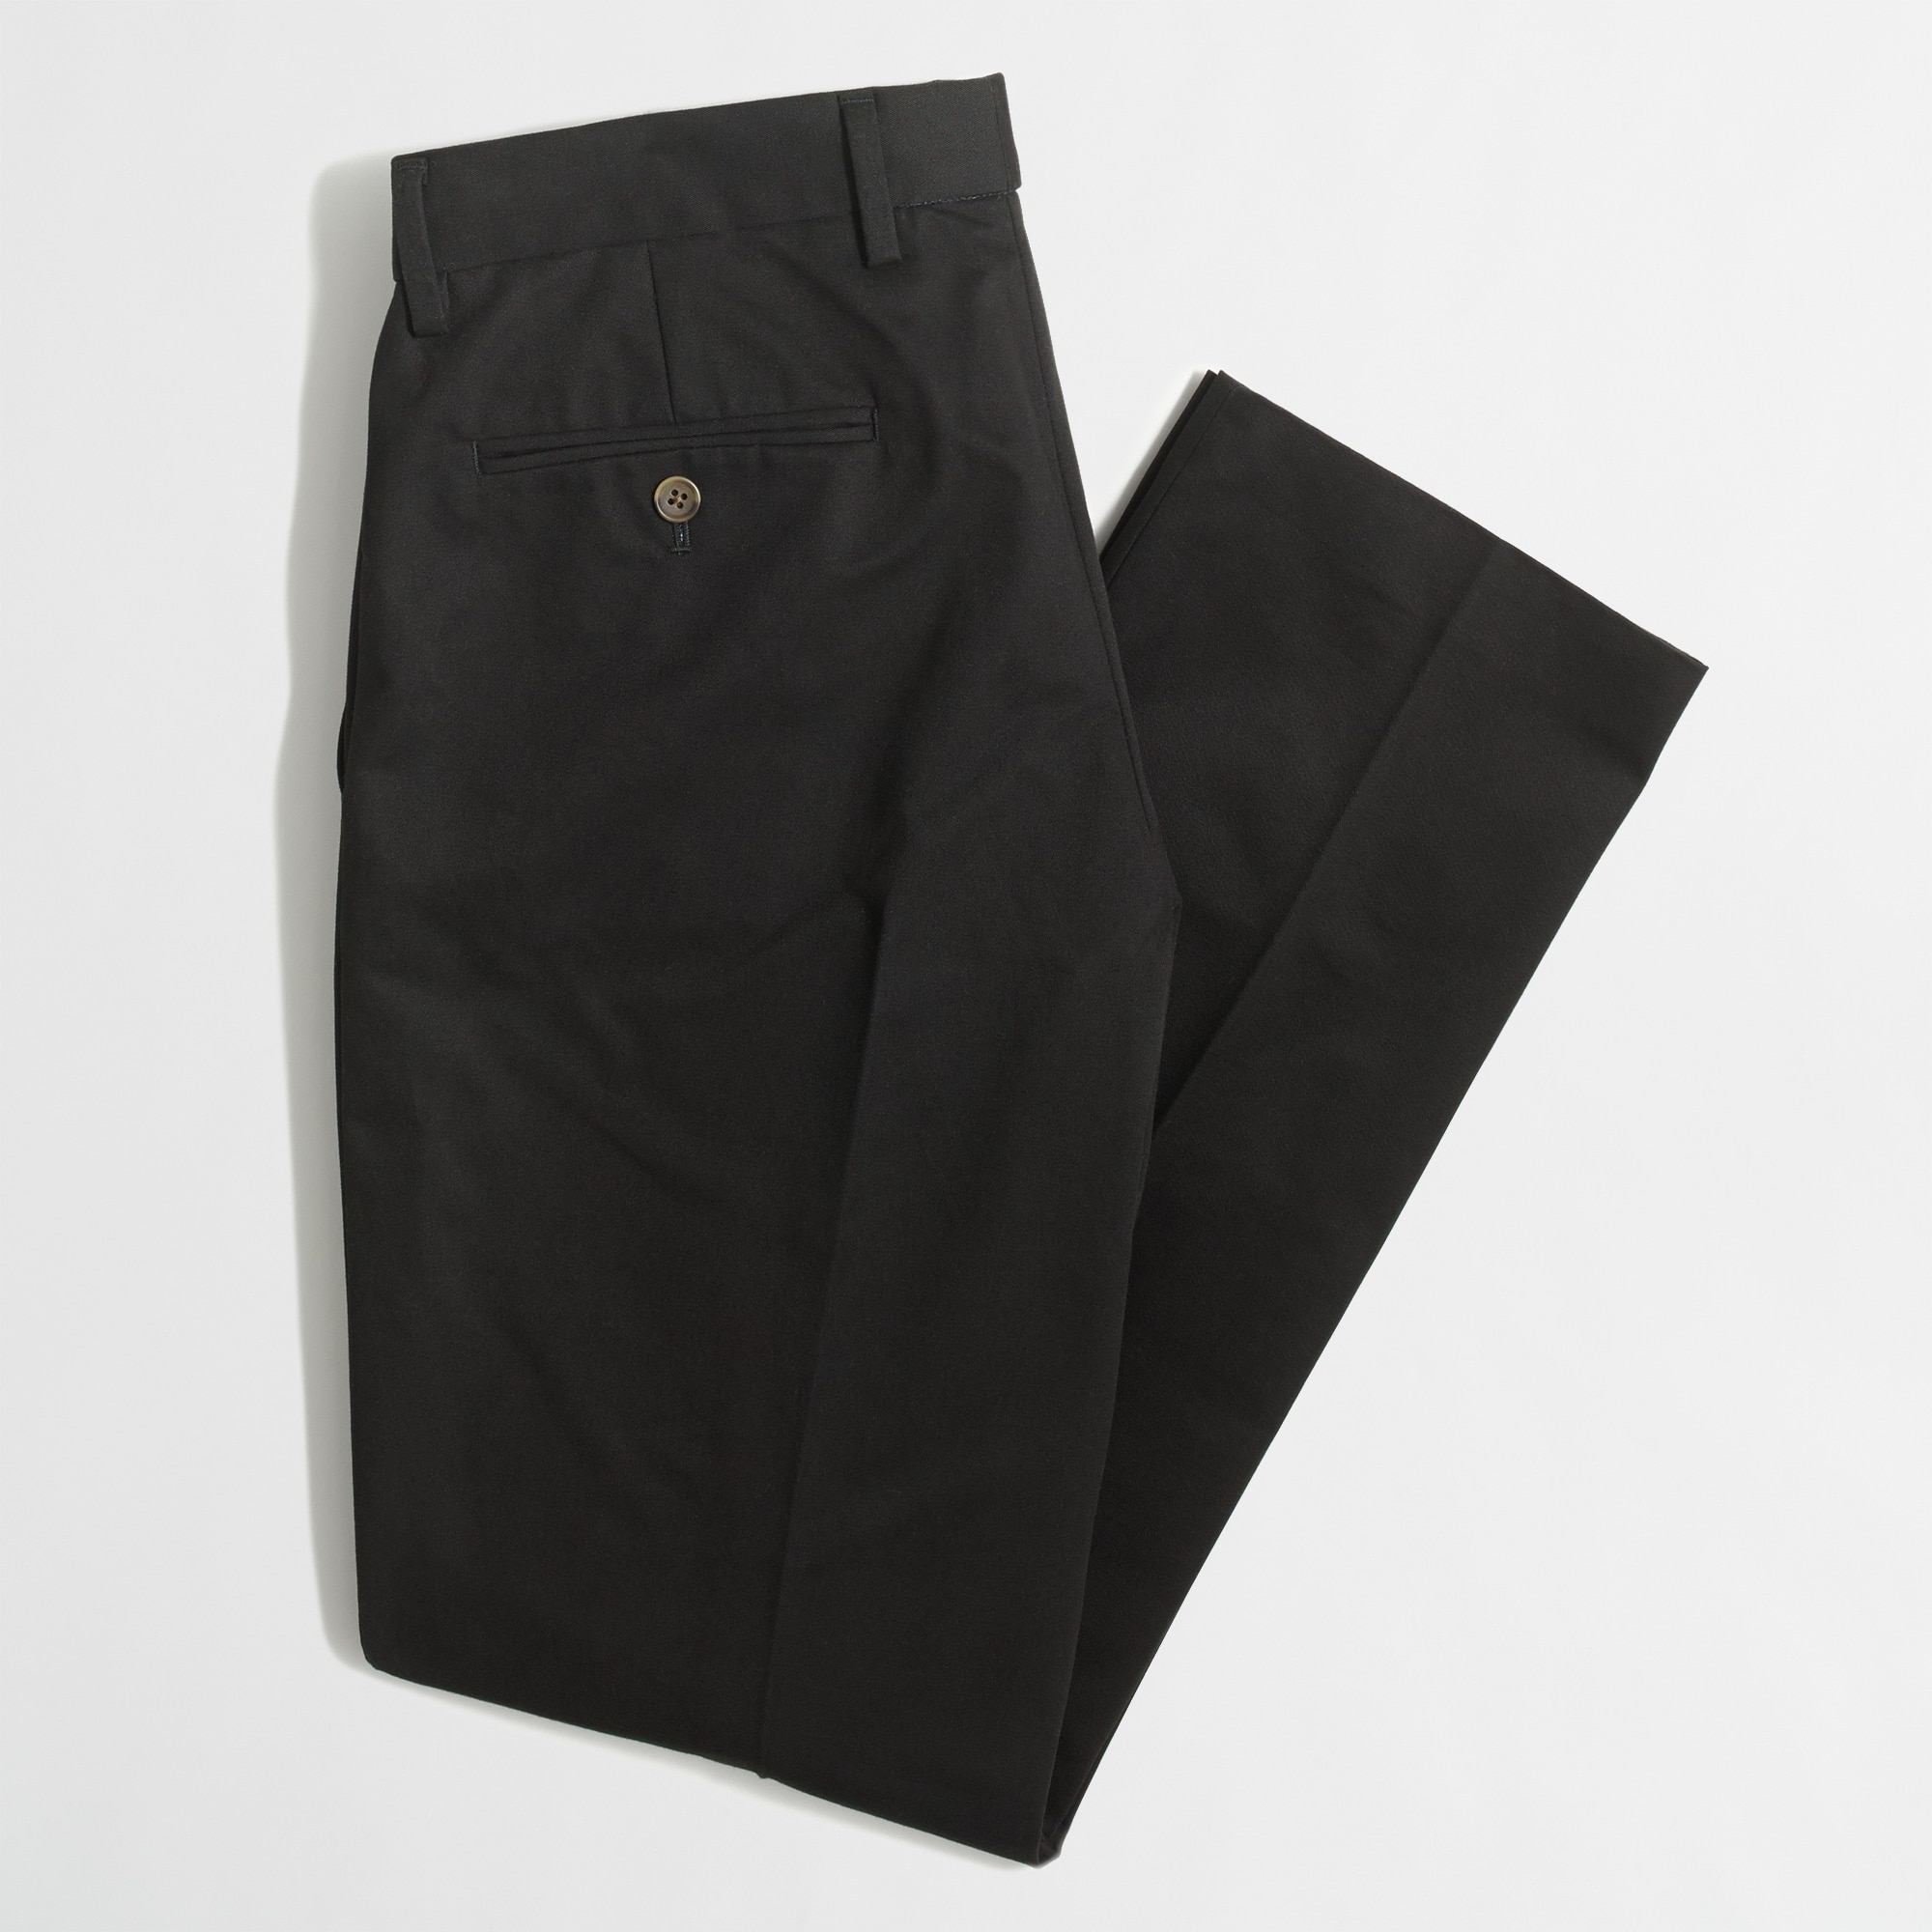 Slim Bedford dress pant